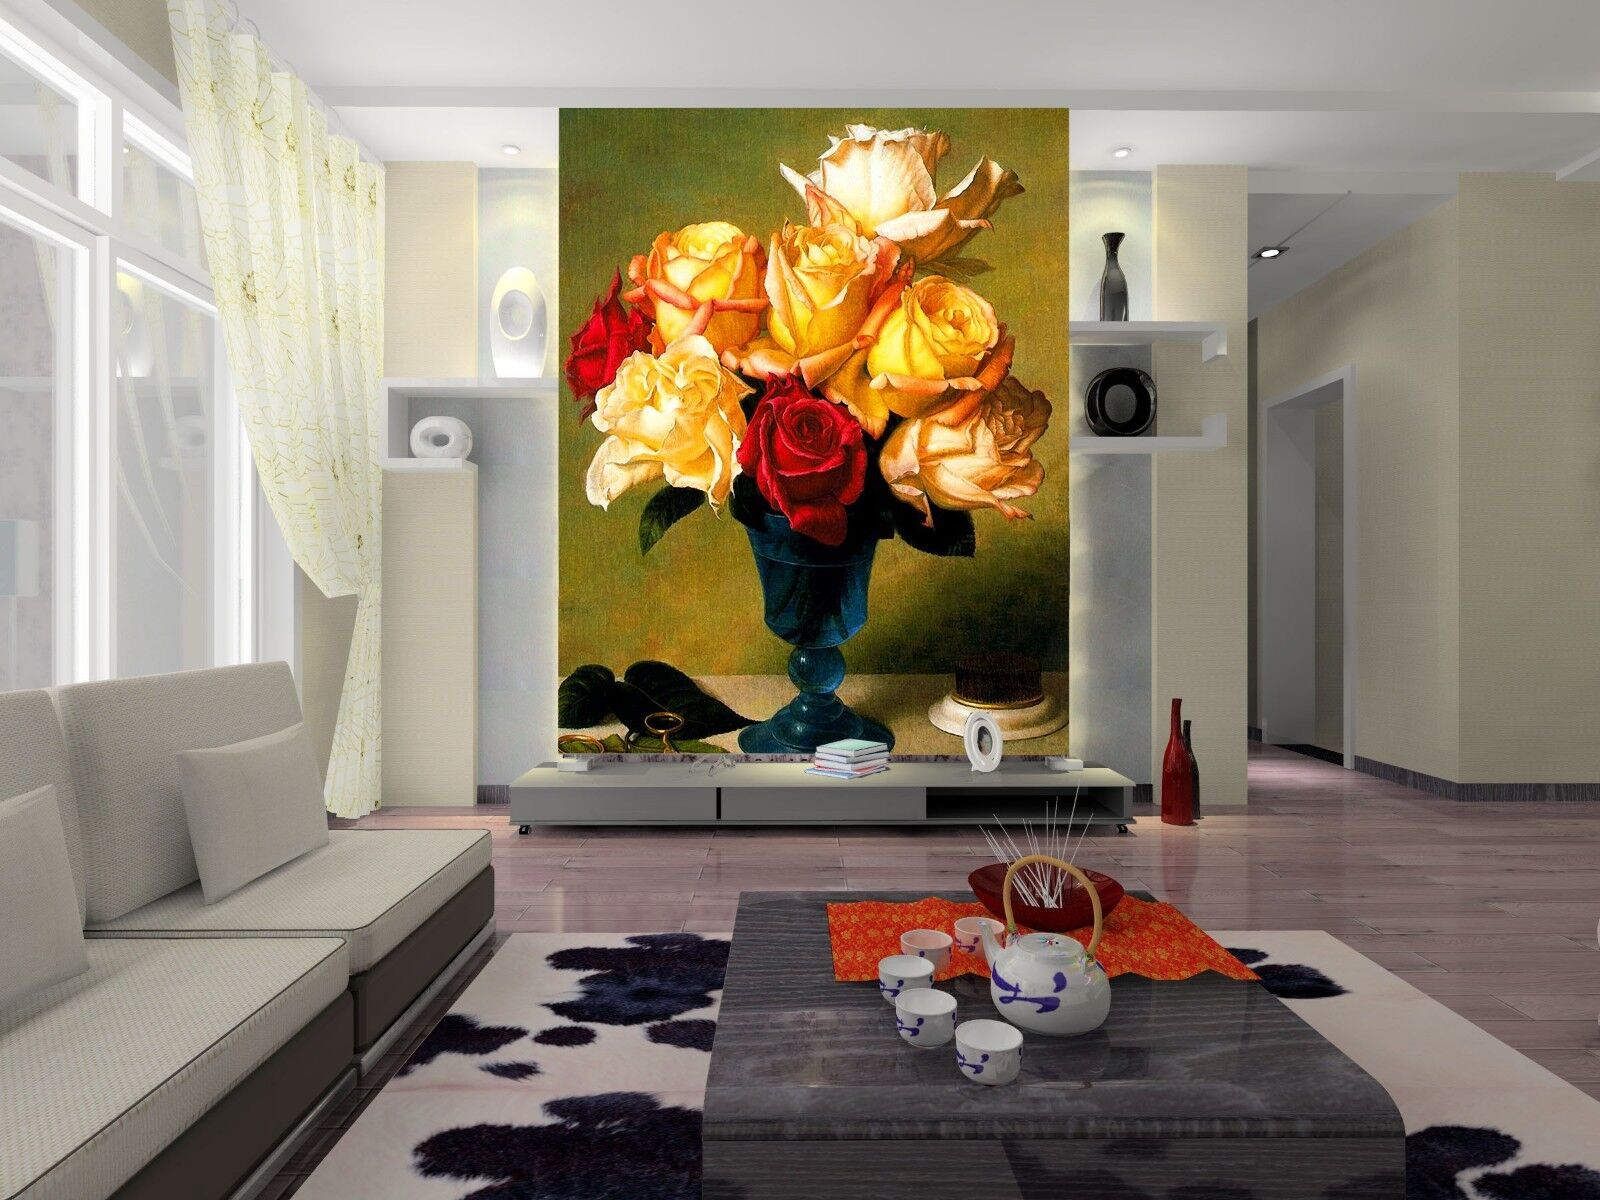 3D Fashion Rose Vase 41 Wall Paper Wall Print Decal Wall Deco Indoor Mural Carly